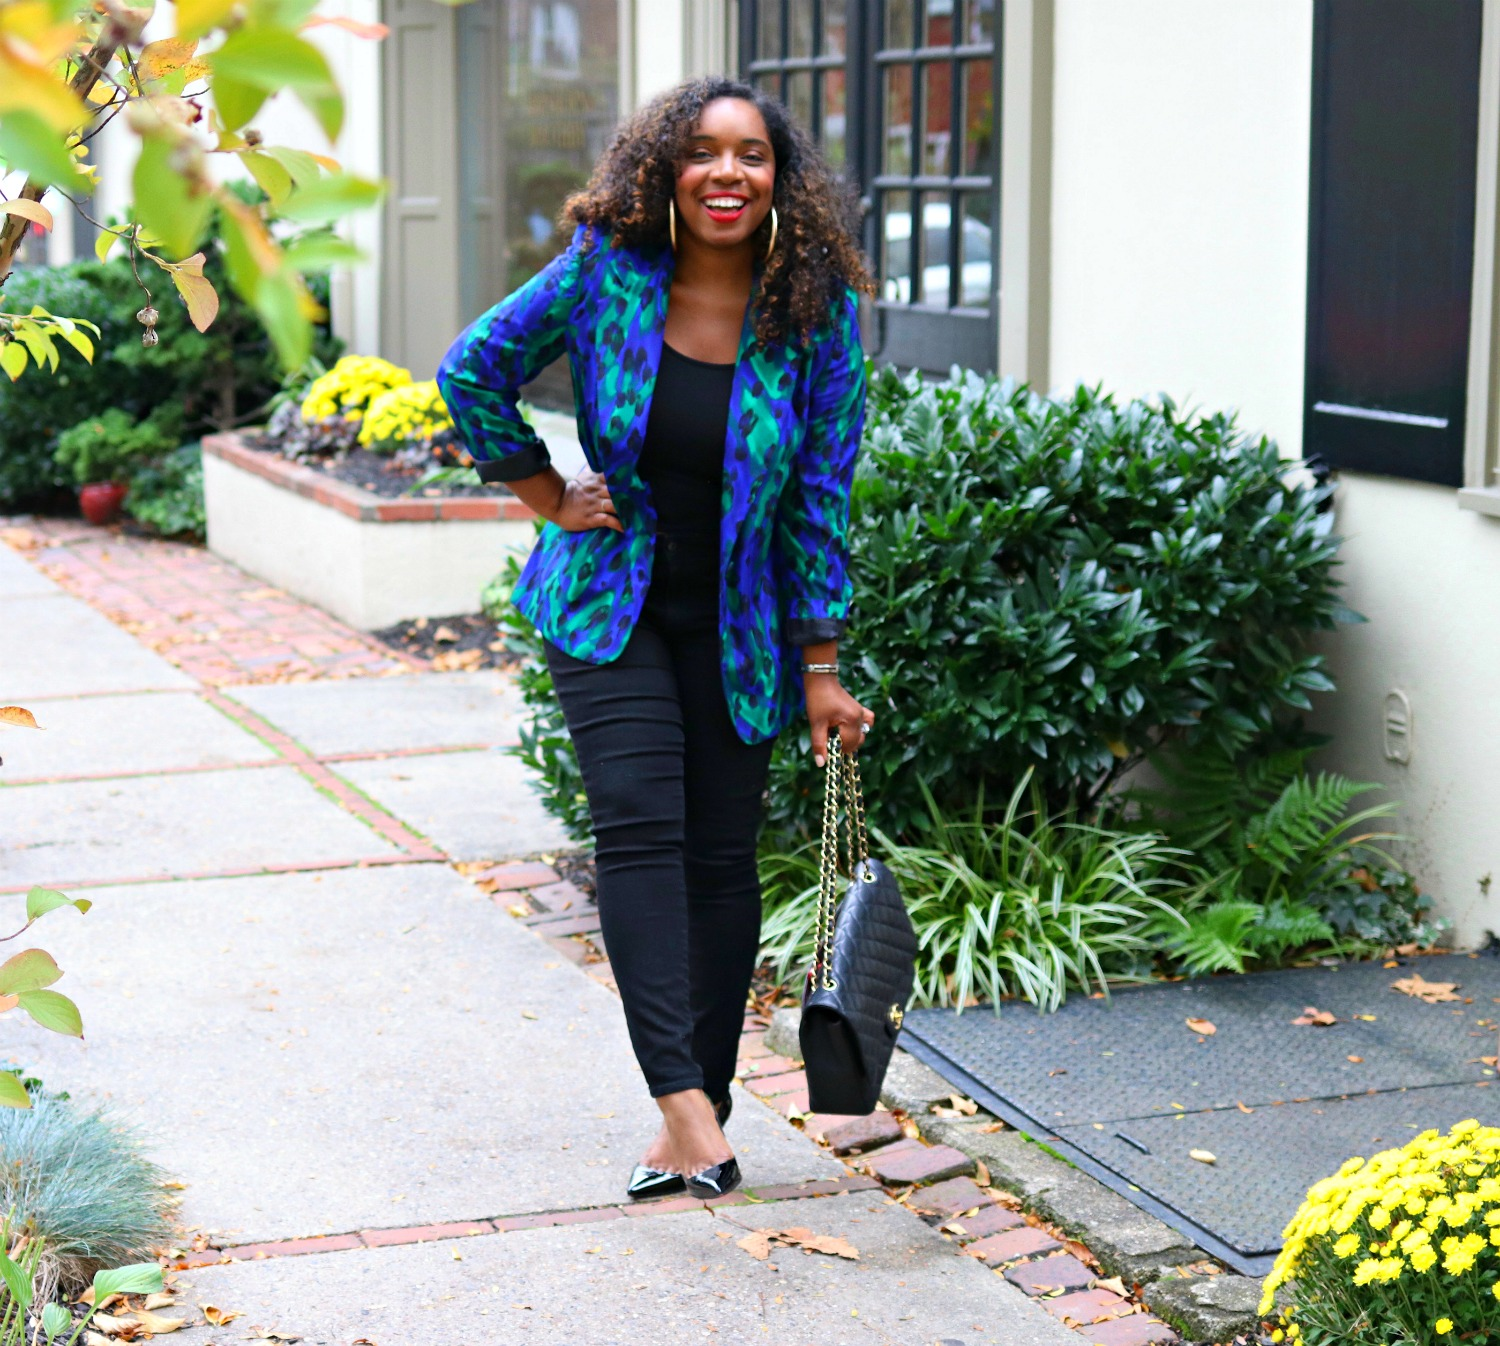 Blue Thrifted Blazer, Black Skinnes, Crop Top, Chanel Purse, Christian Louboutin Pigalle